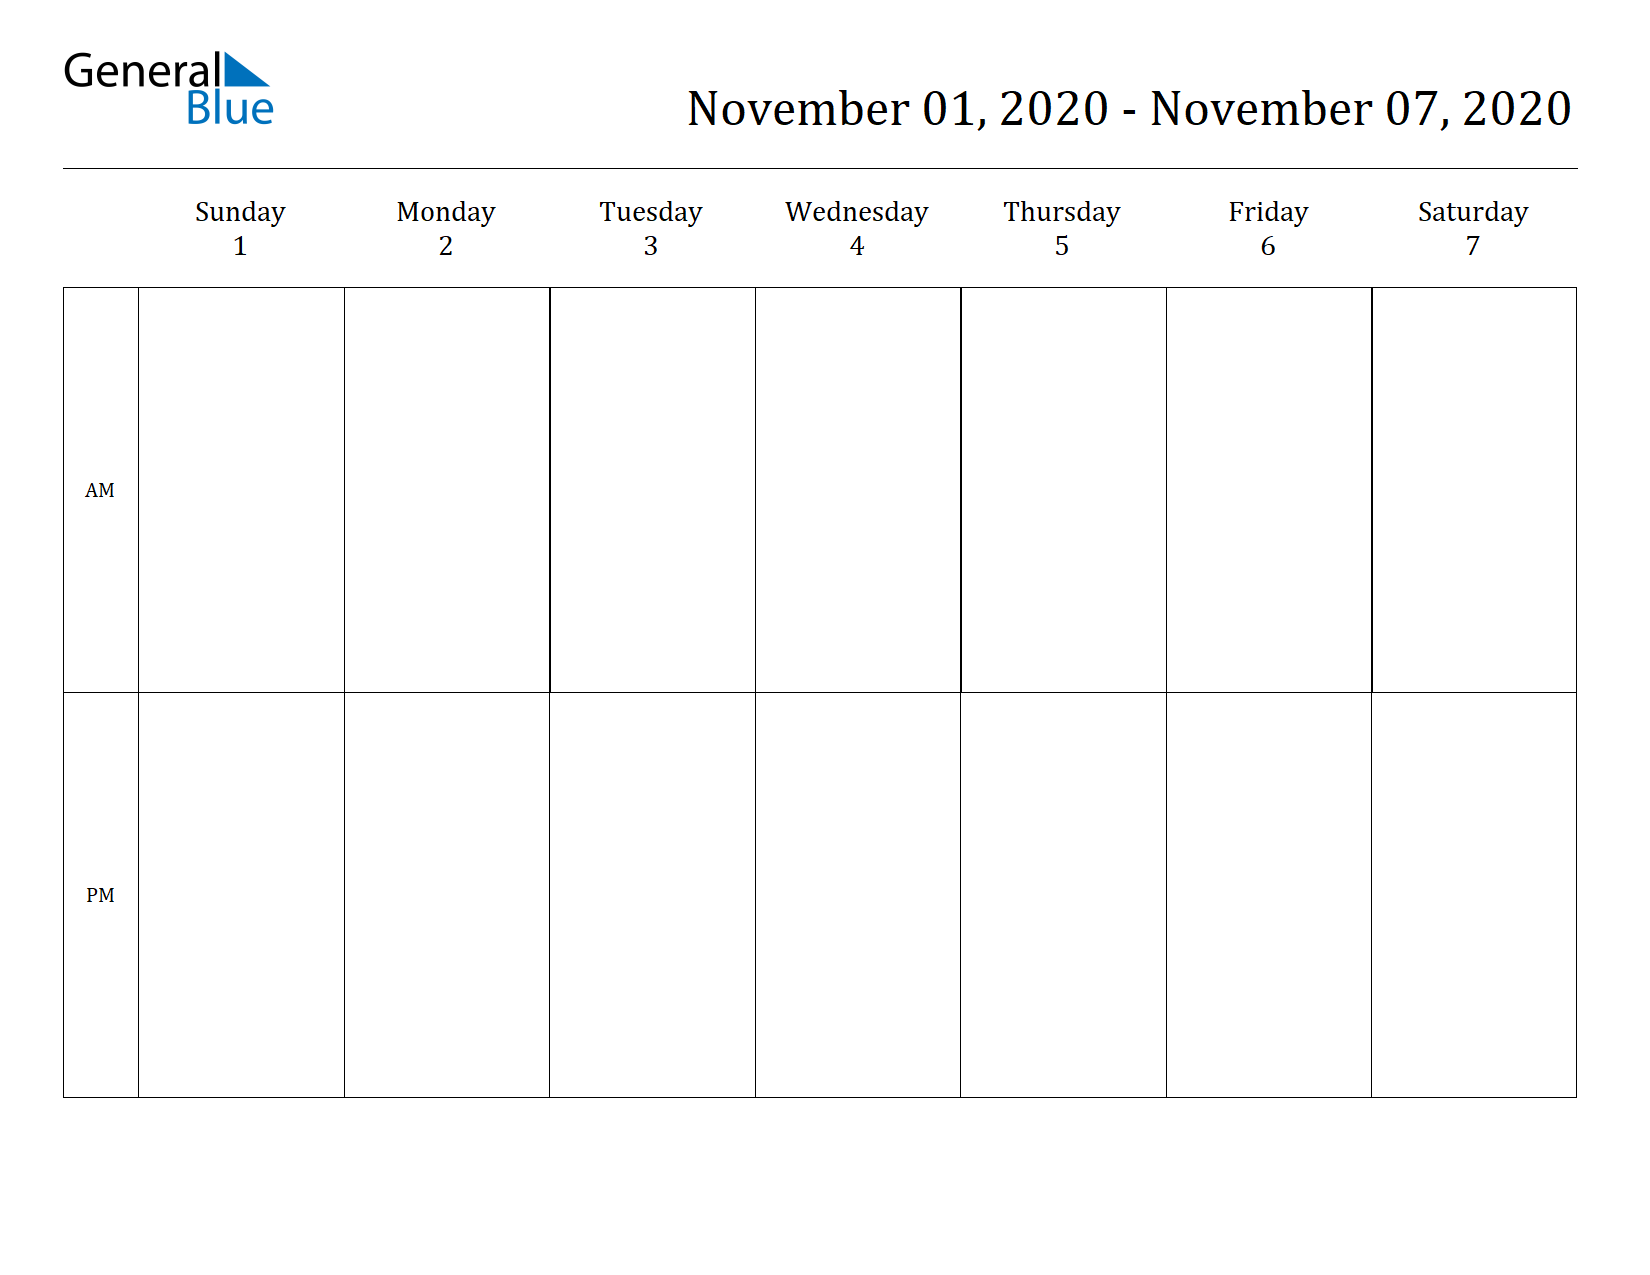 Weekly Calendar for Nov 01, 2020 to Nov 07, 2020